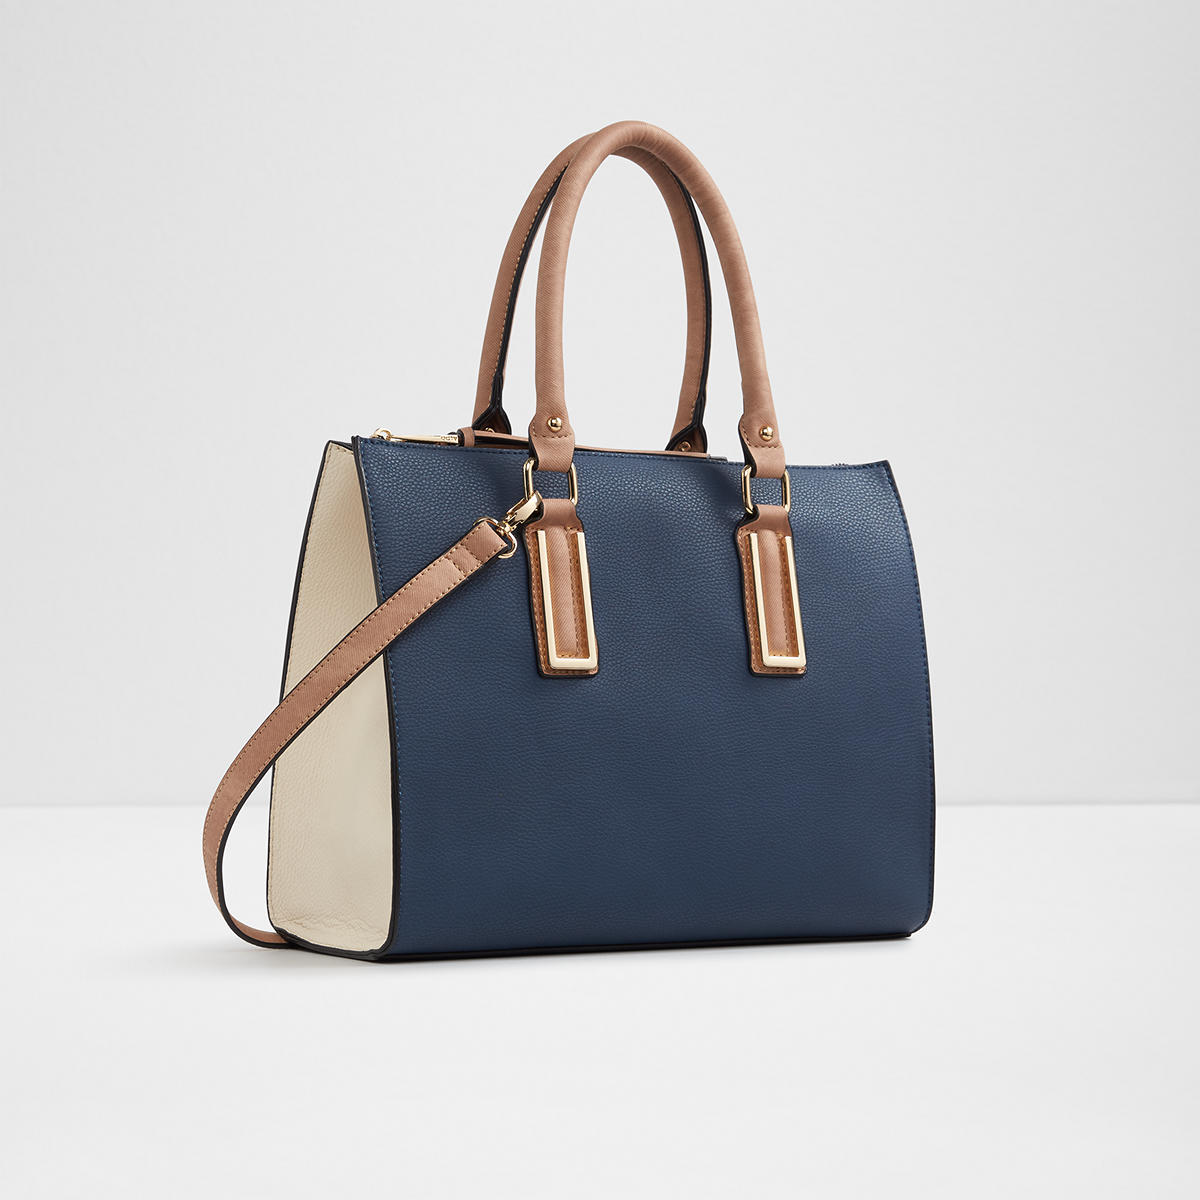 Women's Handbags and Purses A good purse is the perfect finishing touch for any outfit. At Payless, you'll find handbags for every ensemble and occasion occasion, from elegant clutches to trendy crossbodies and chic satchels.